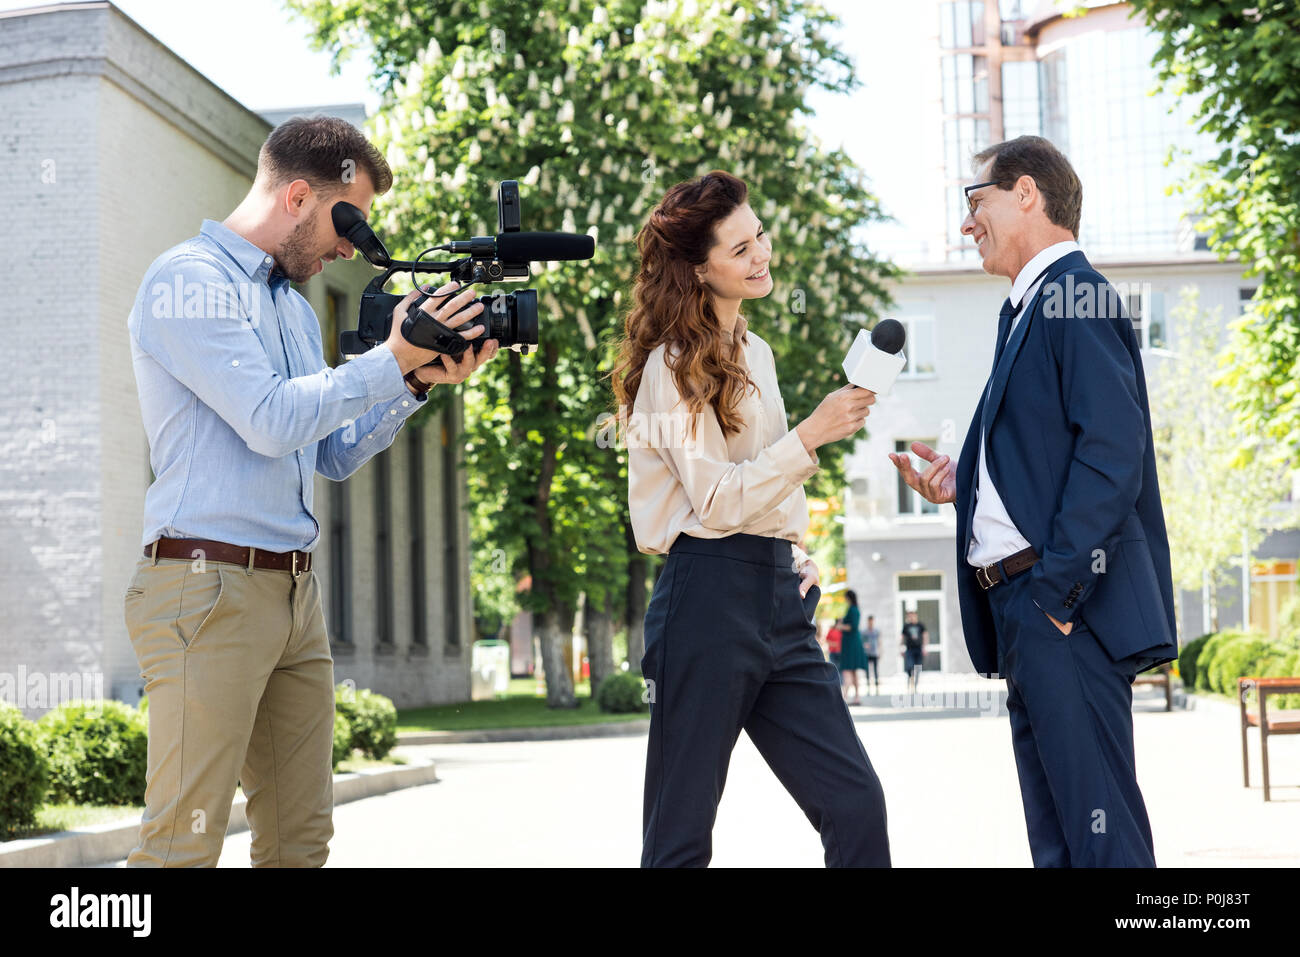 cameraman and female newscaster interviewing businessman - Stock Image